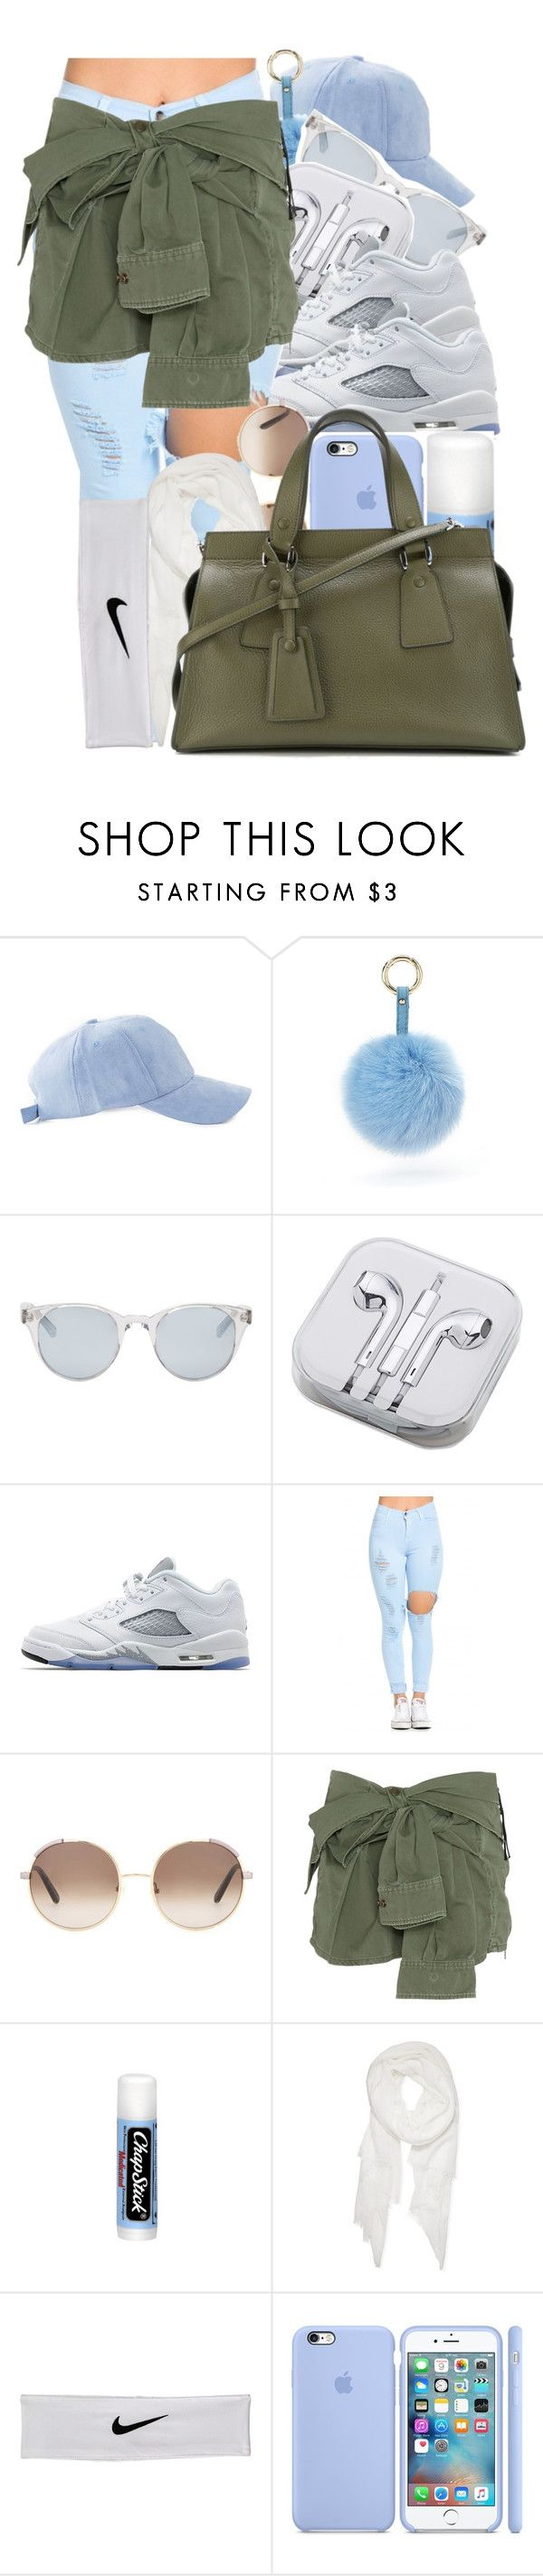 """""""Like to be on my TAG LIST!!"""" by niyah682 ❤ liked on Polyvore featuring Forever 21, Sun Buddies, PhunkeeTree, Jordan Brand, Chloé, Faith Connexion, Chapstick, Calvin Klein, NIKE and Giorgio Armani"""